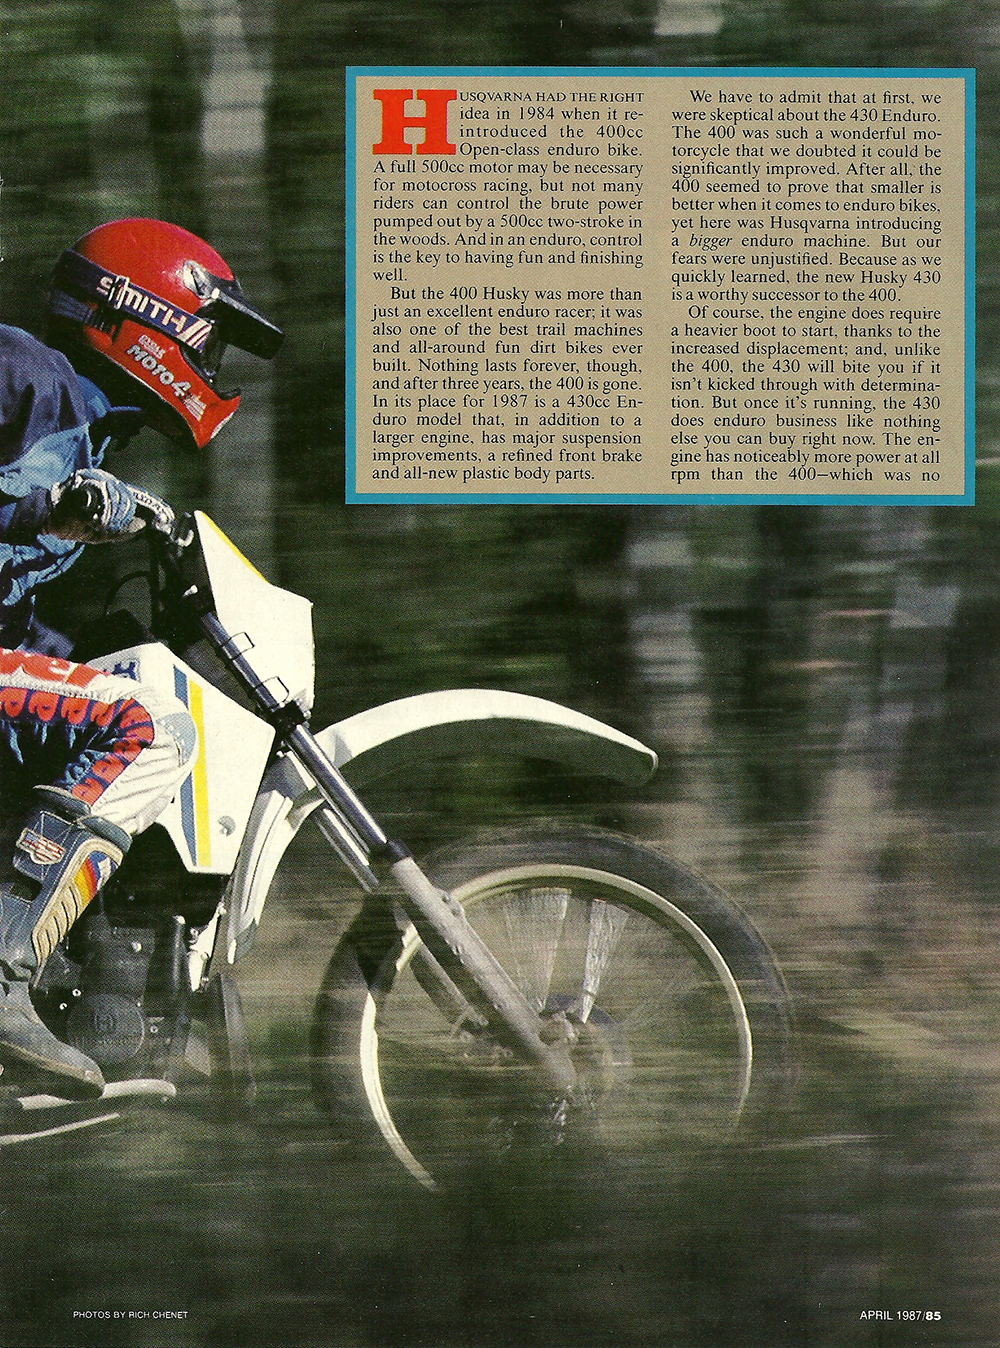 1987 Husqvarna 430 enduro road test 02.jpg